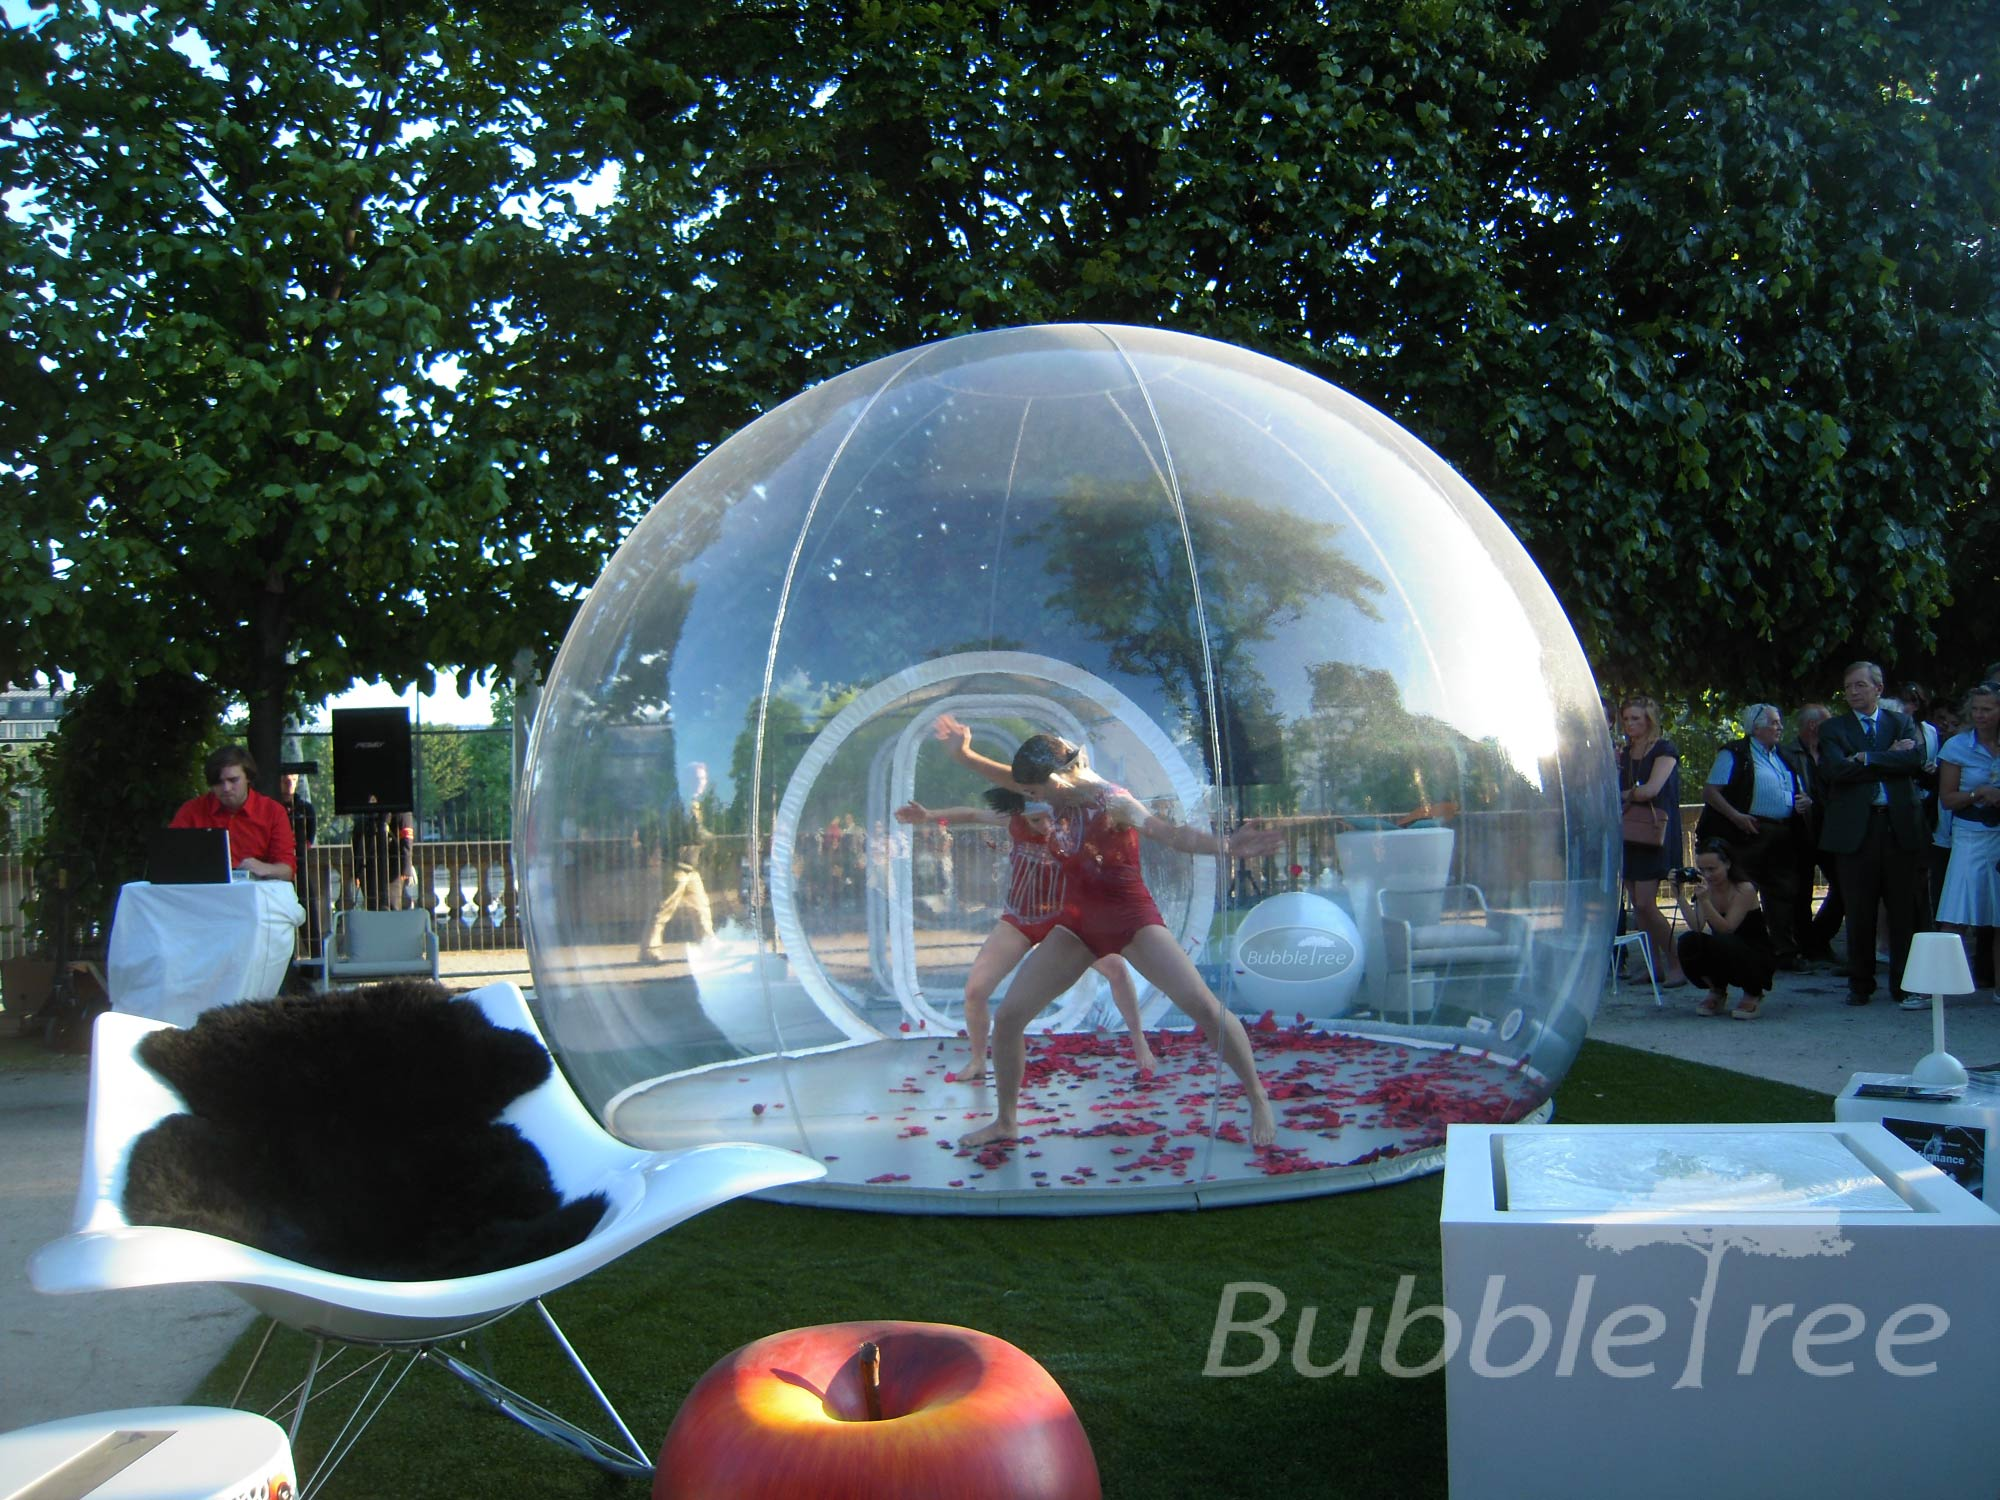 cristalbubble dedicated to the dance bubble tree. Black Bedroom Furniture Sets. Home Design Ideas